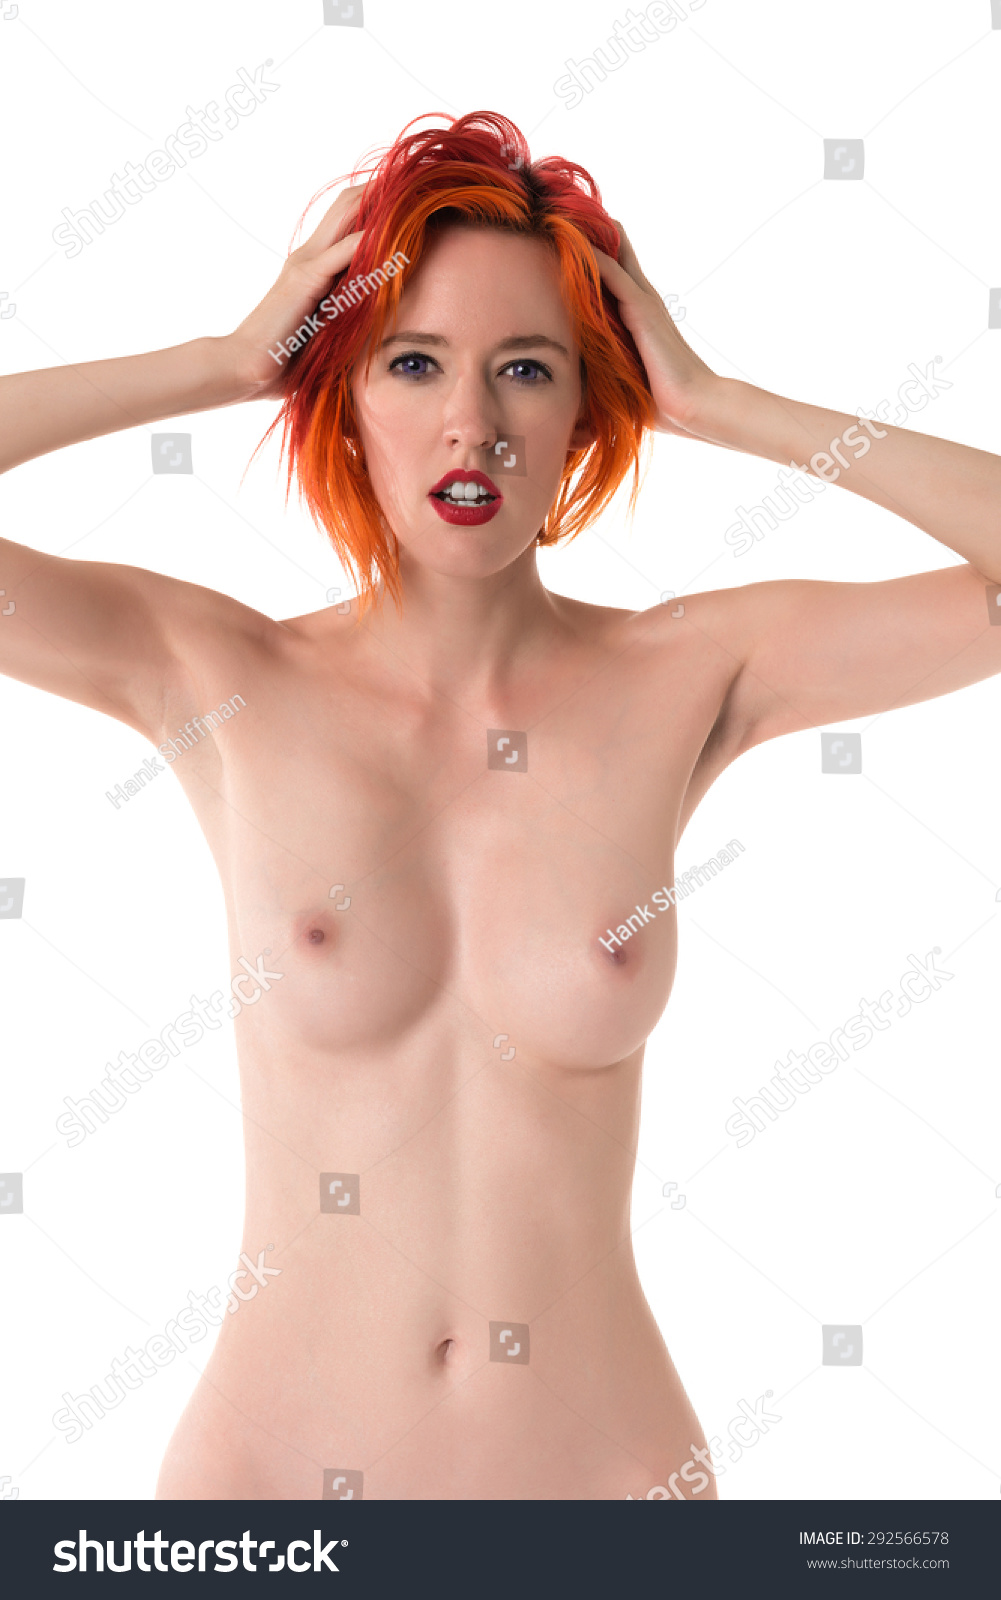 Apologise, Nude girls with dyed red hair